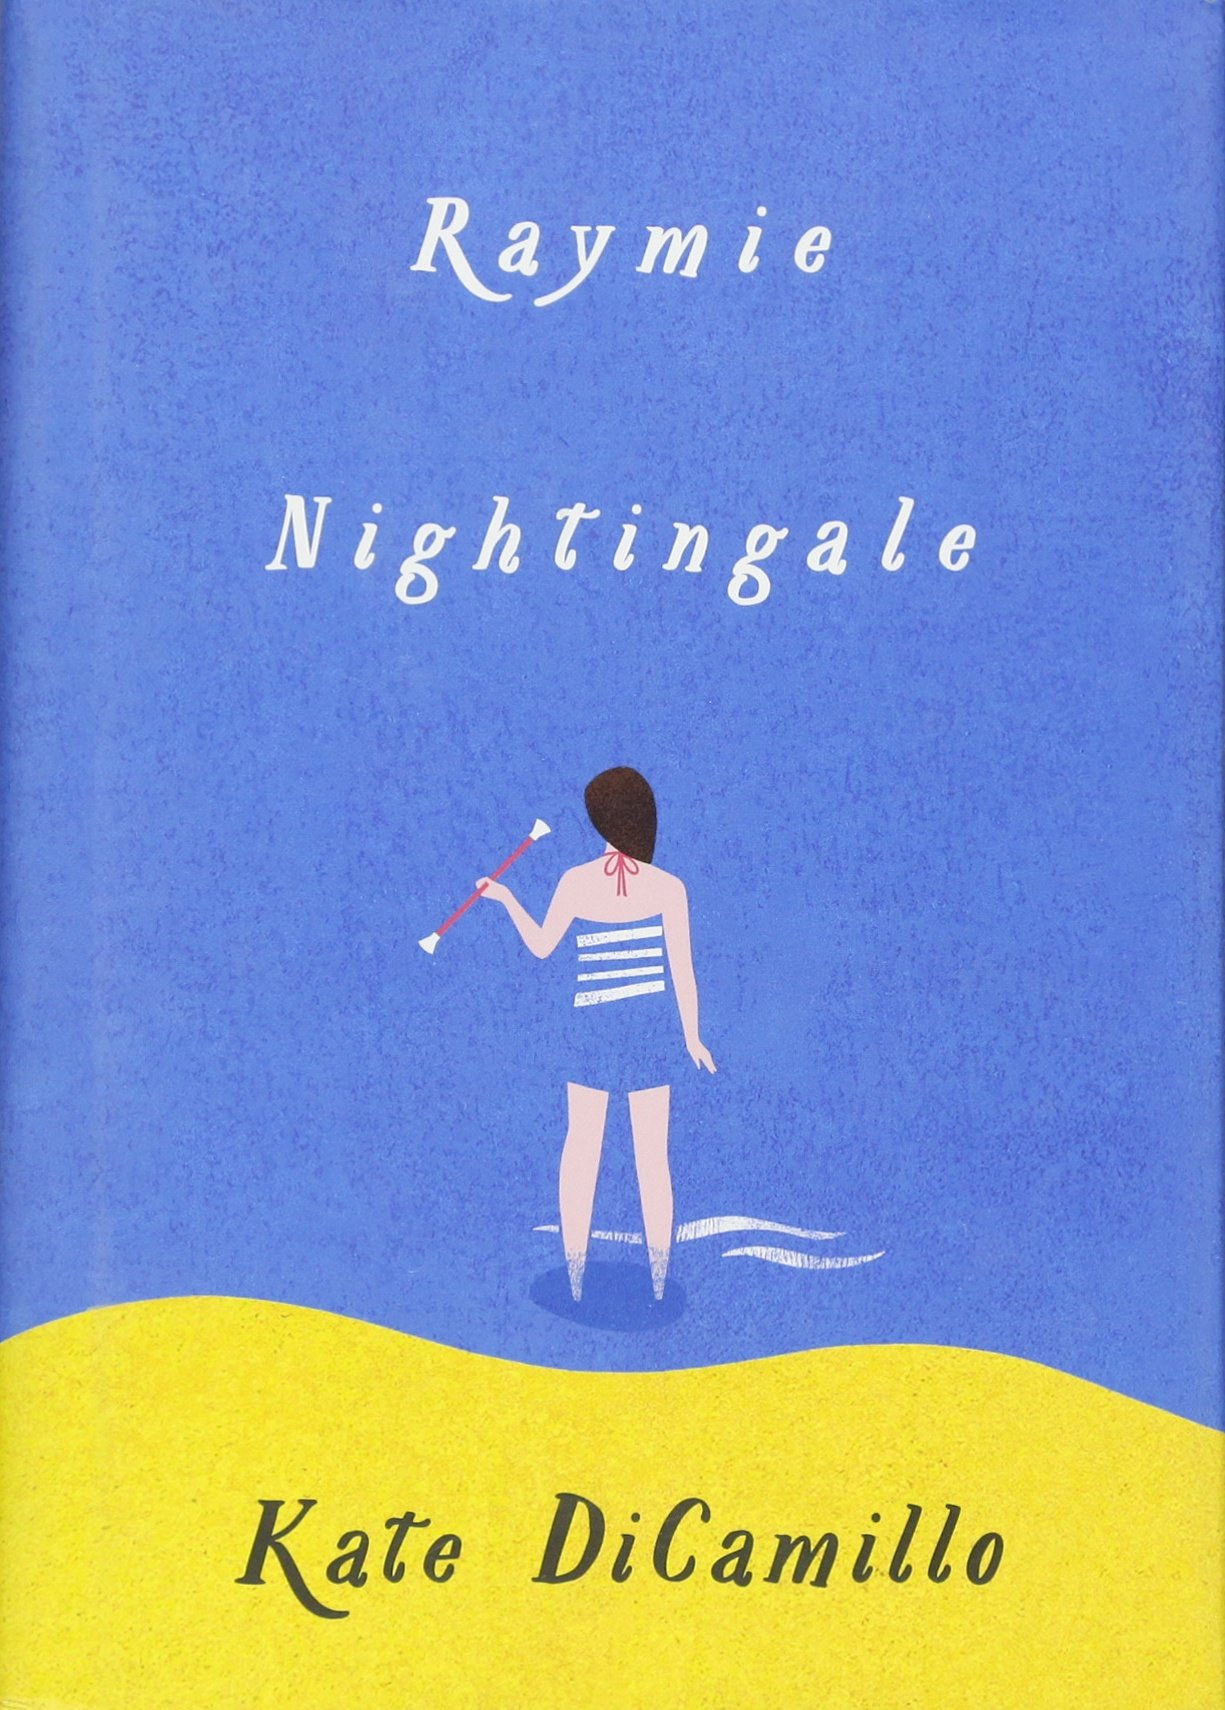 Raymie Nightingale Image